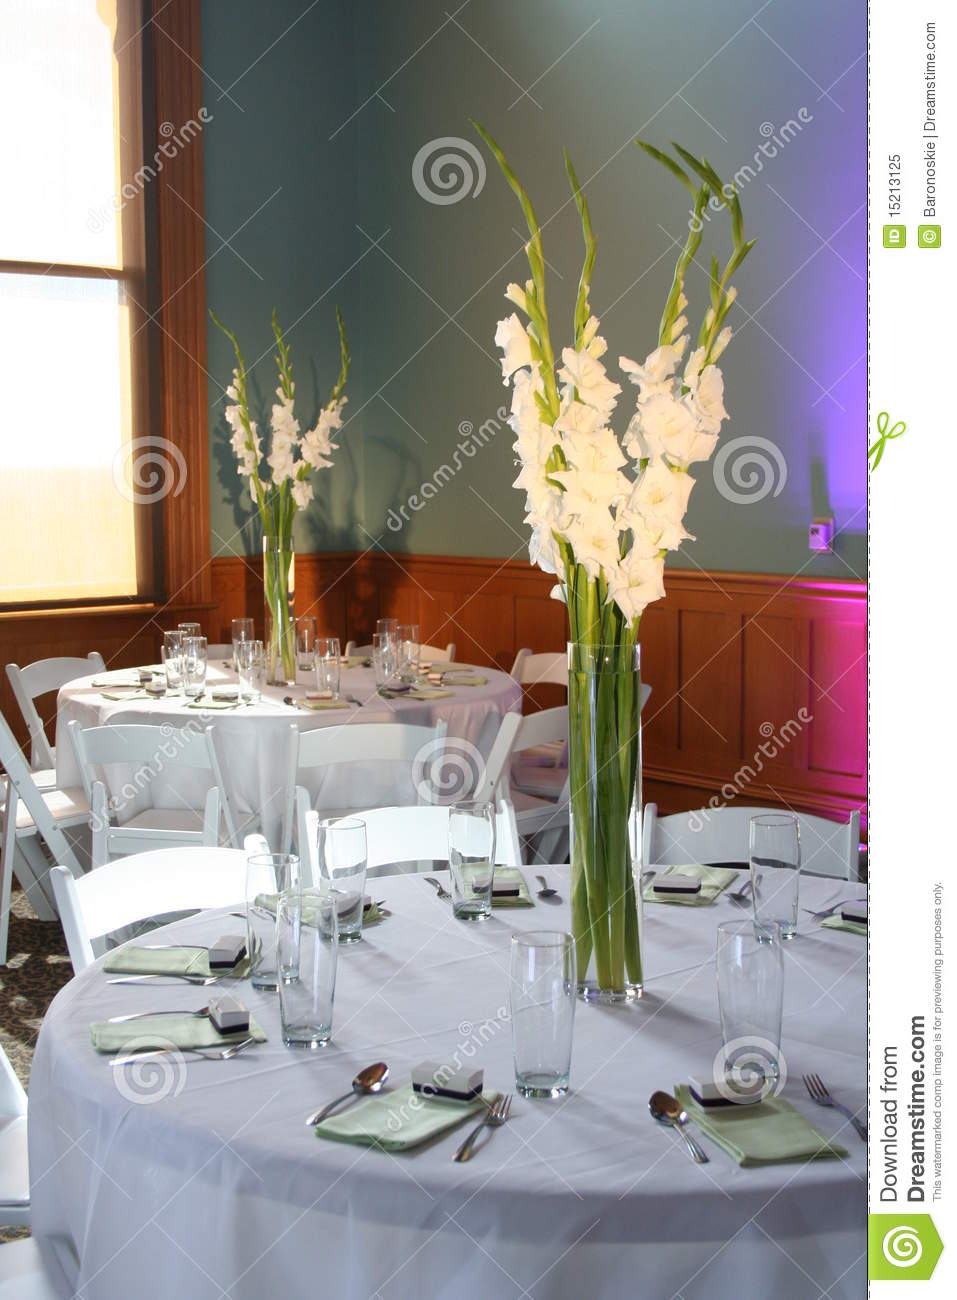 Reception Table Decorations Royalty Free Stock Photo - Image: 15213125